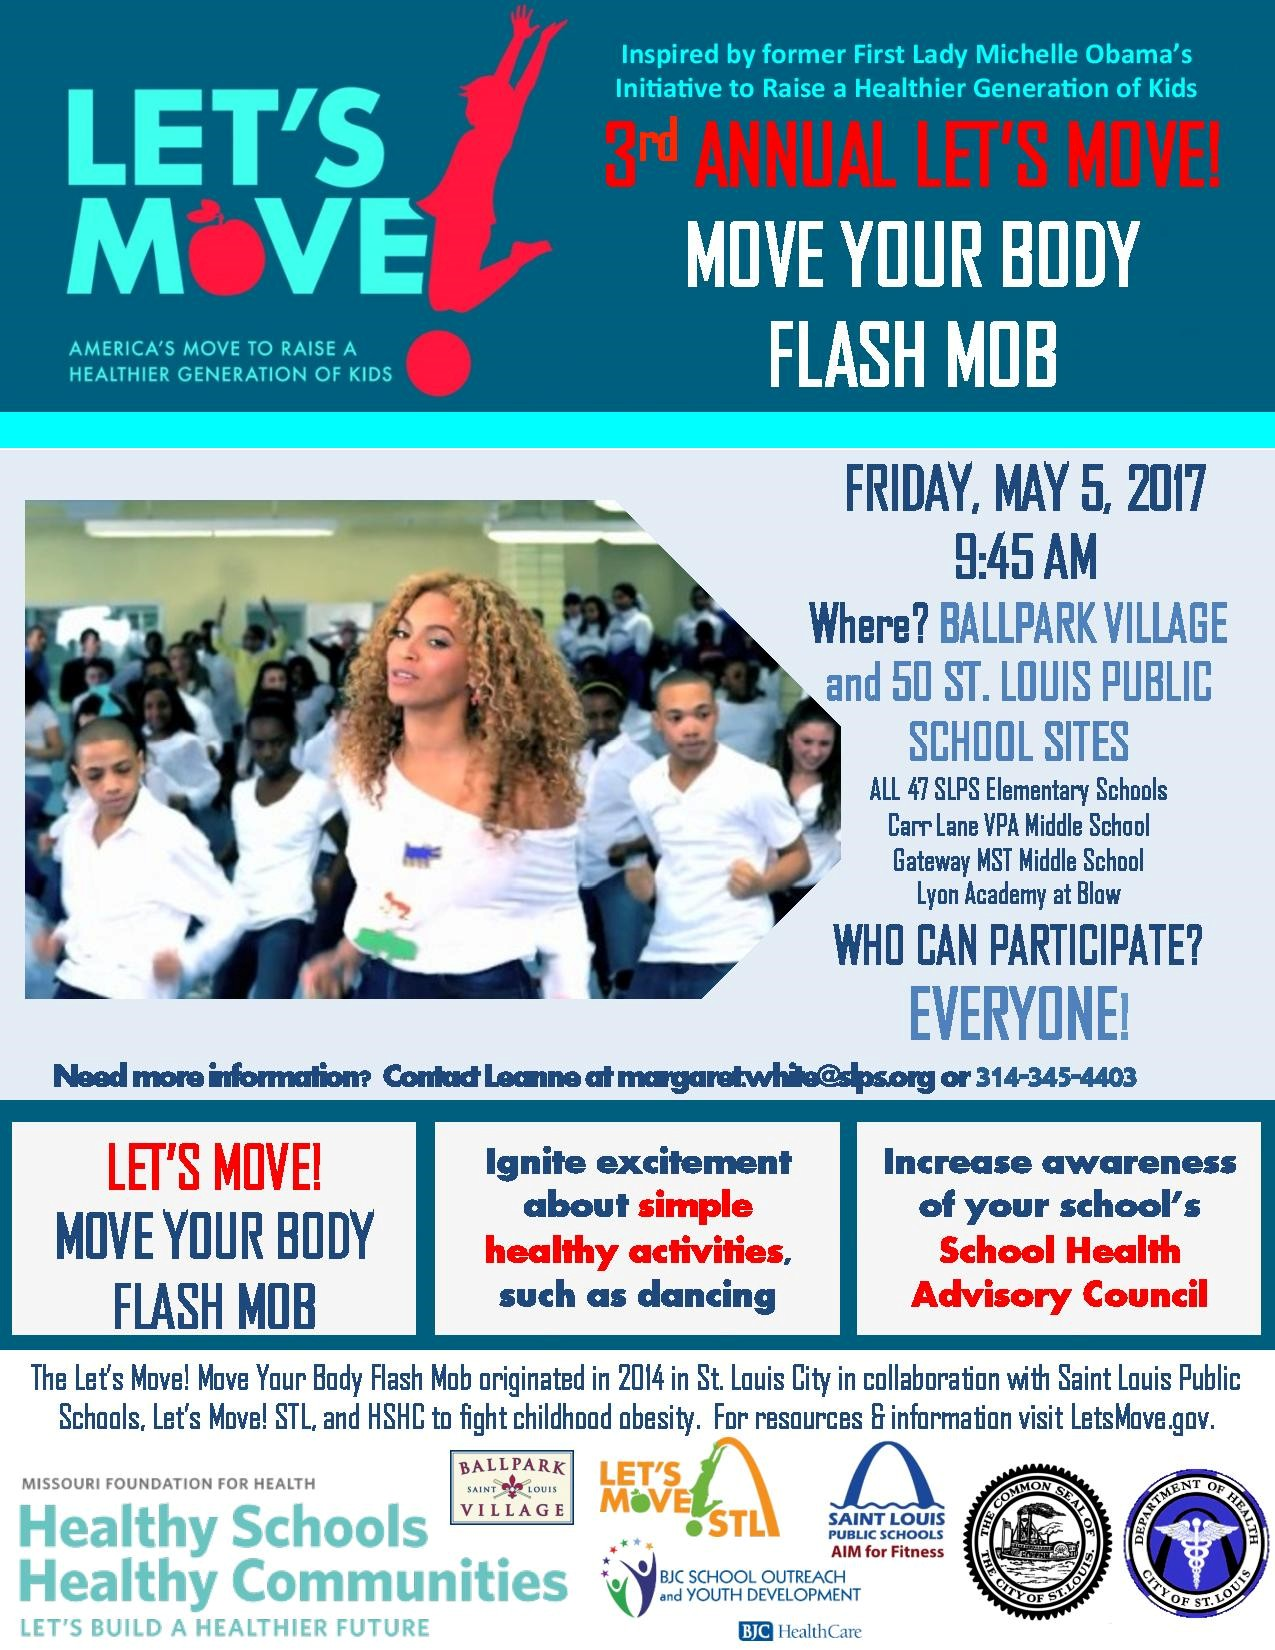 2017 Lets Move Flash Mob Flier